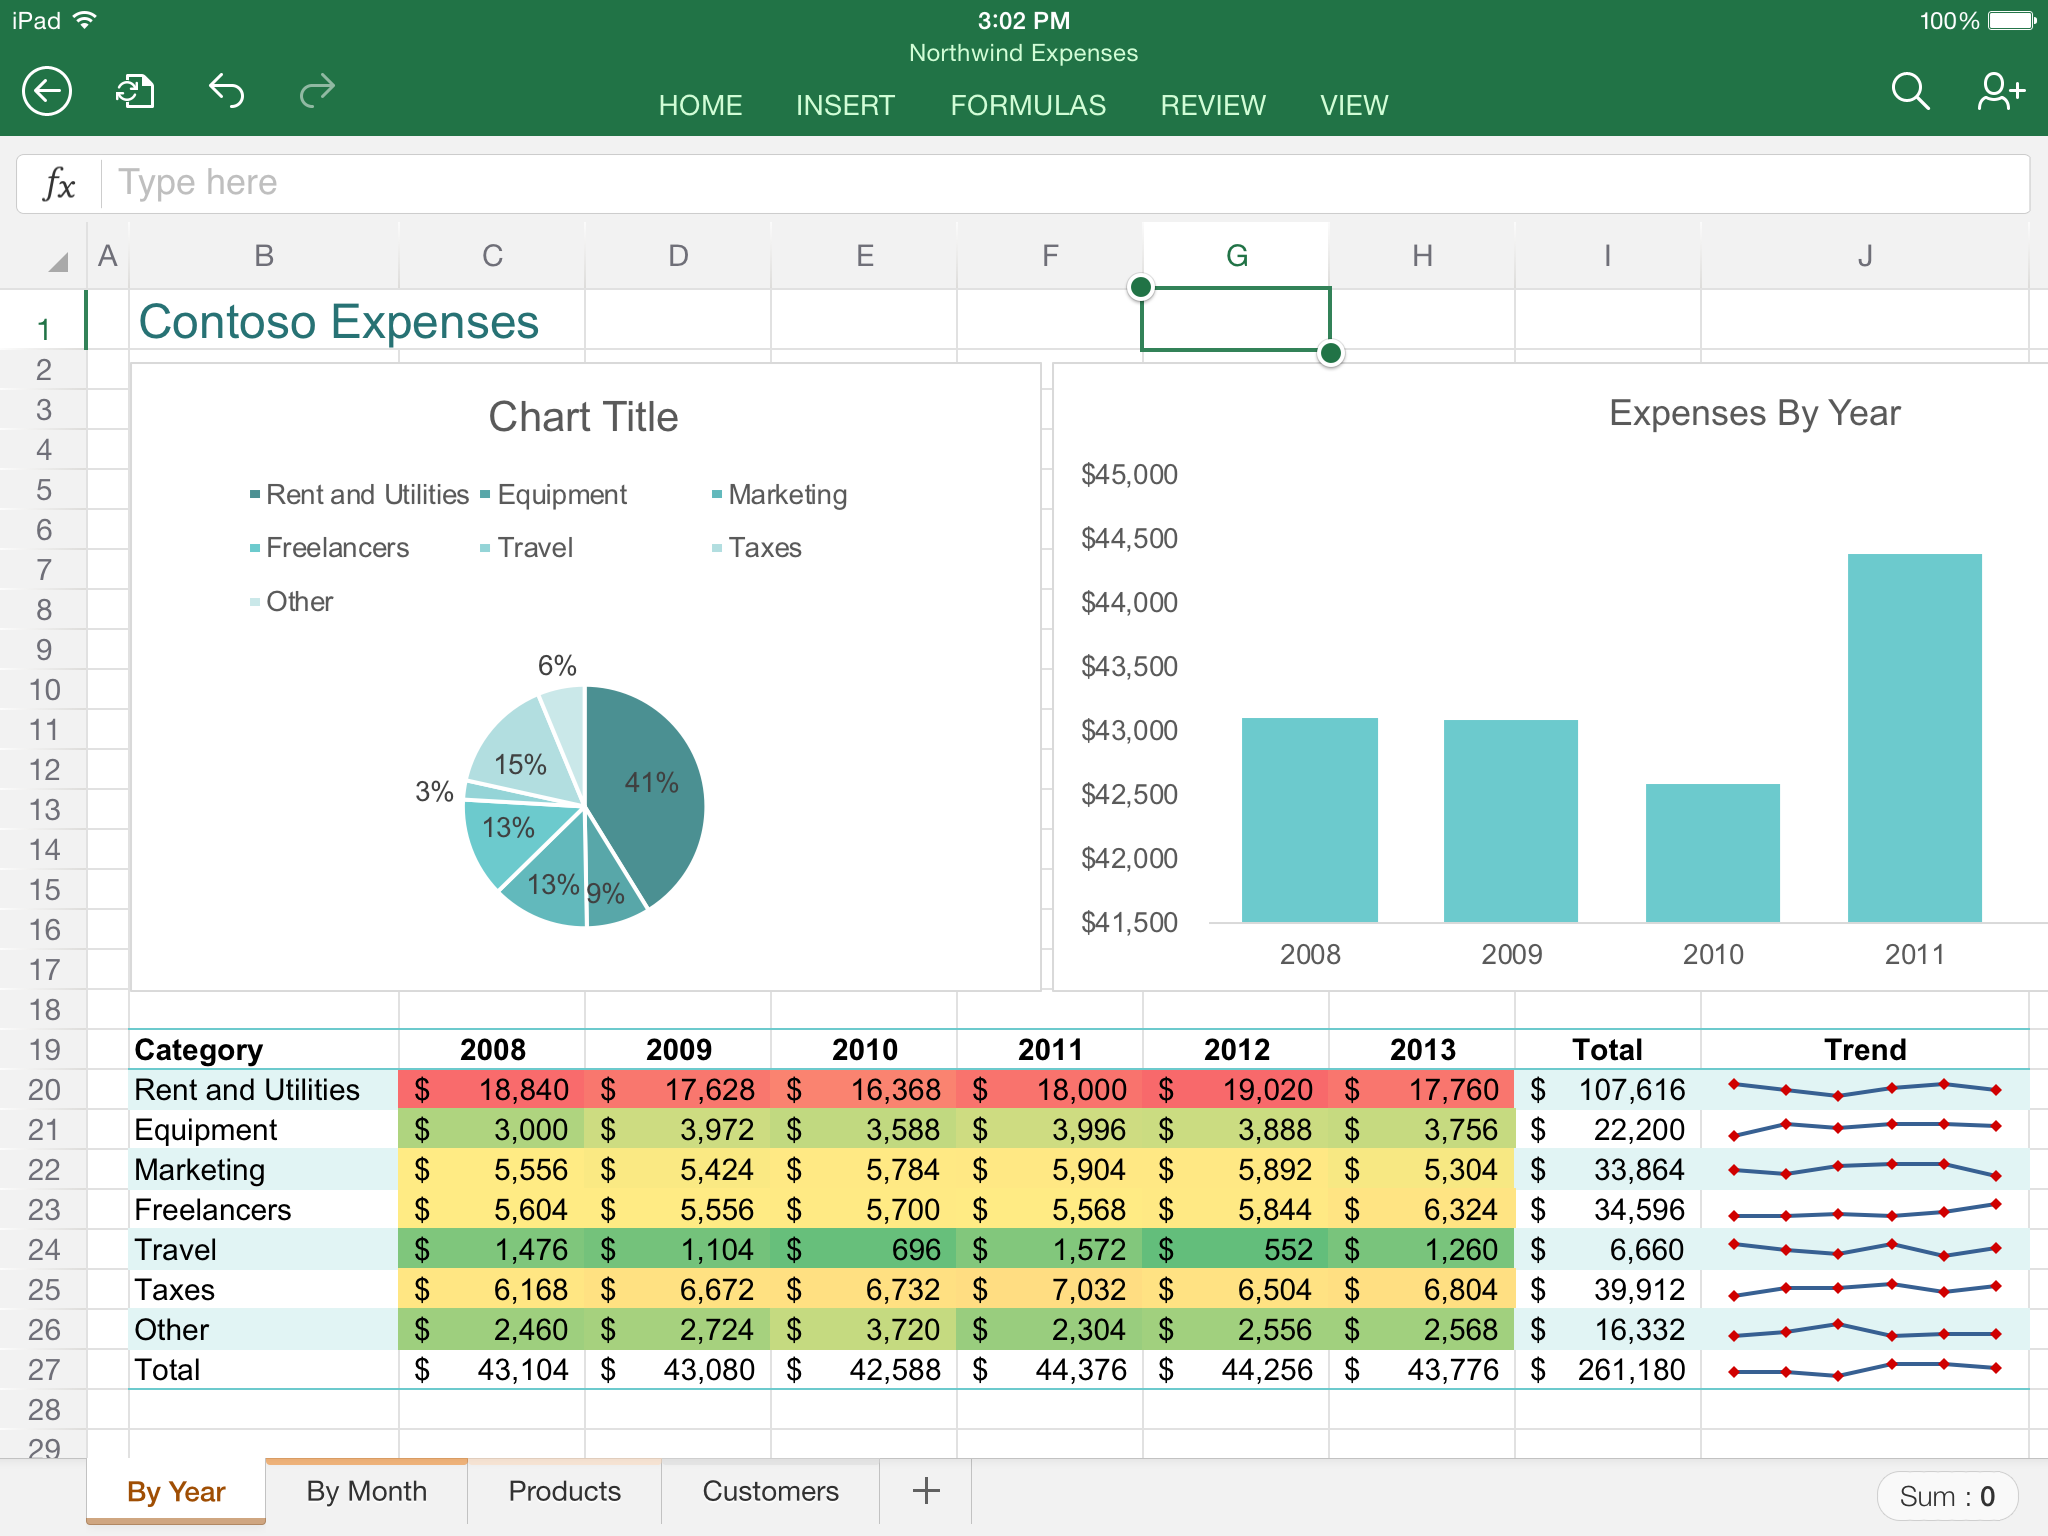 Ediblewildsus  Mesmerizing App Highlight Excel  Mobile Digital Now With Hot Excel In Action With Adorable Mean And Standard Deviation In Excel Also Excel Inventory List In Addition It Budget Template Excel And Count Excel Cells By Color As Well As Pdf To Excel Spreadsheet Additionally String Comparison In Excel From Youstonybrookedu With Ediblewildsus  Hot App Highlight Excel  Mobile Digital Now With Adorable Excel In Action And Mesmerizing Mean And Standard Deviation In Excel Also Excel Inventory List In Addition It Budget Template Excel From Youstonybrookedu